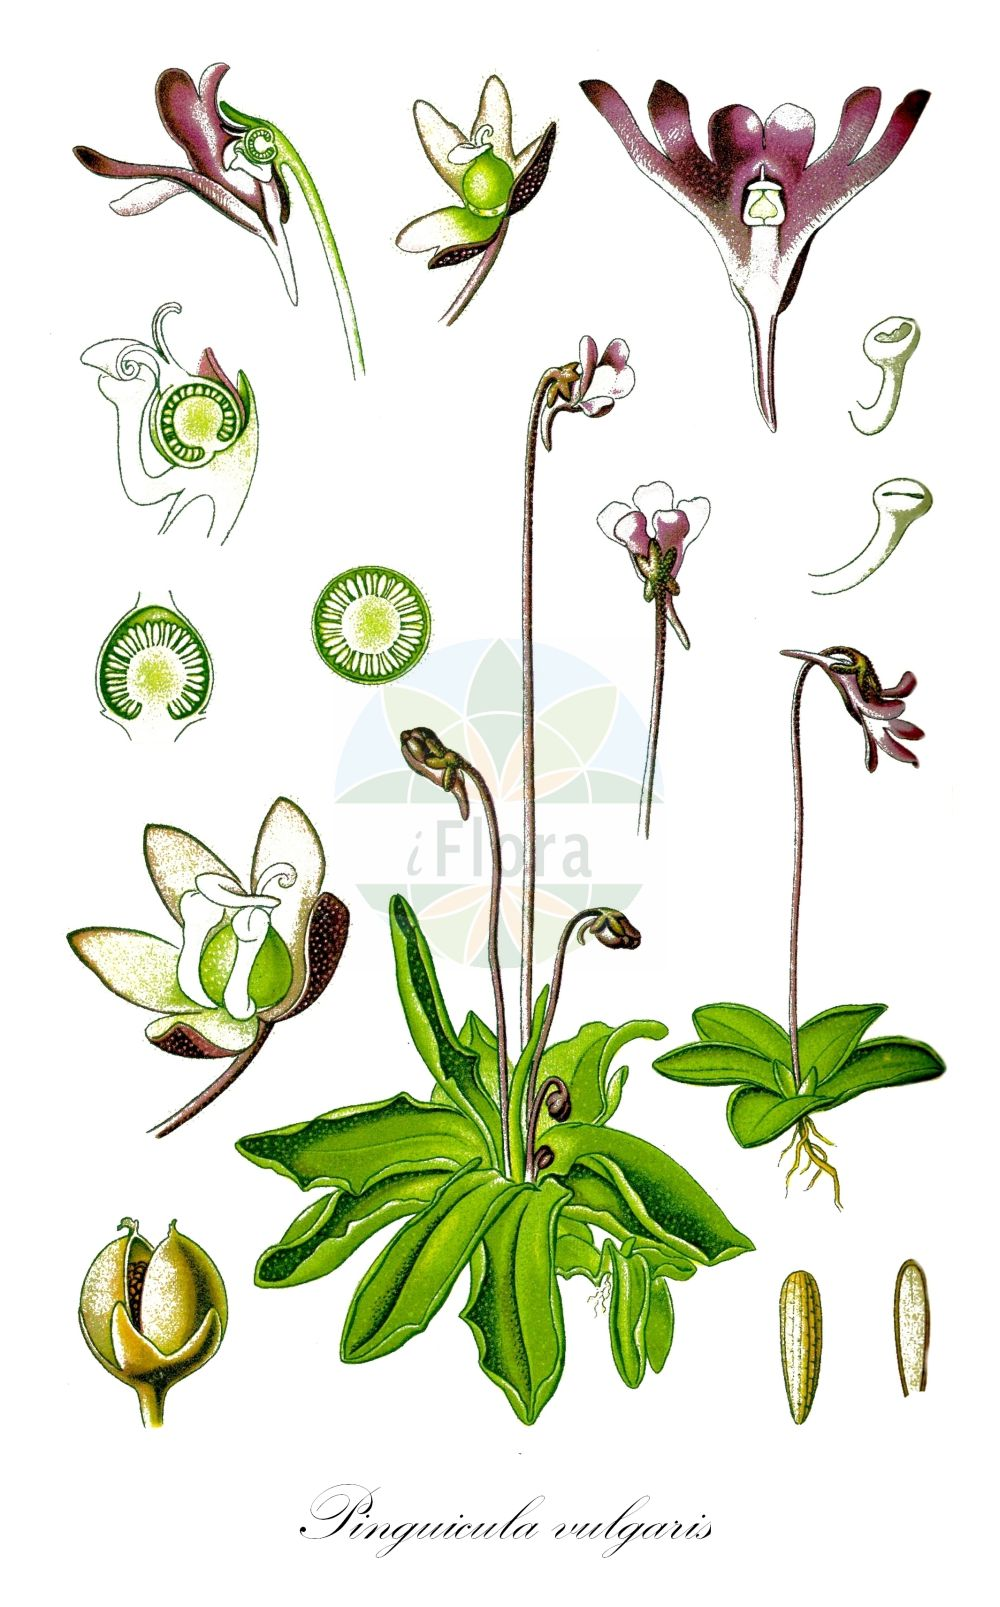 Historische Abbildung von Pinguicula vulgaris (Gewoehnliches Fettkraut - Common Butterwort). ---- Historical Drawing of Pinguicula vulgaris (Gewoehnliches Fettkraut - Common Butterwort).(Pinguicula vulgaris,Gewoehnliches Fettkraut,Common Butterwort,Pinguicula bicolor,Pinguicula gypsophila,Pinguicula norica,subsp. bicolor,Beanweed,Butterwort,Pinguicula,Fettkraut,Butterwort,Lentibulariaceae,Wasserschlauchgewaechse,Bladderwort family,Thomé (1885))